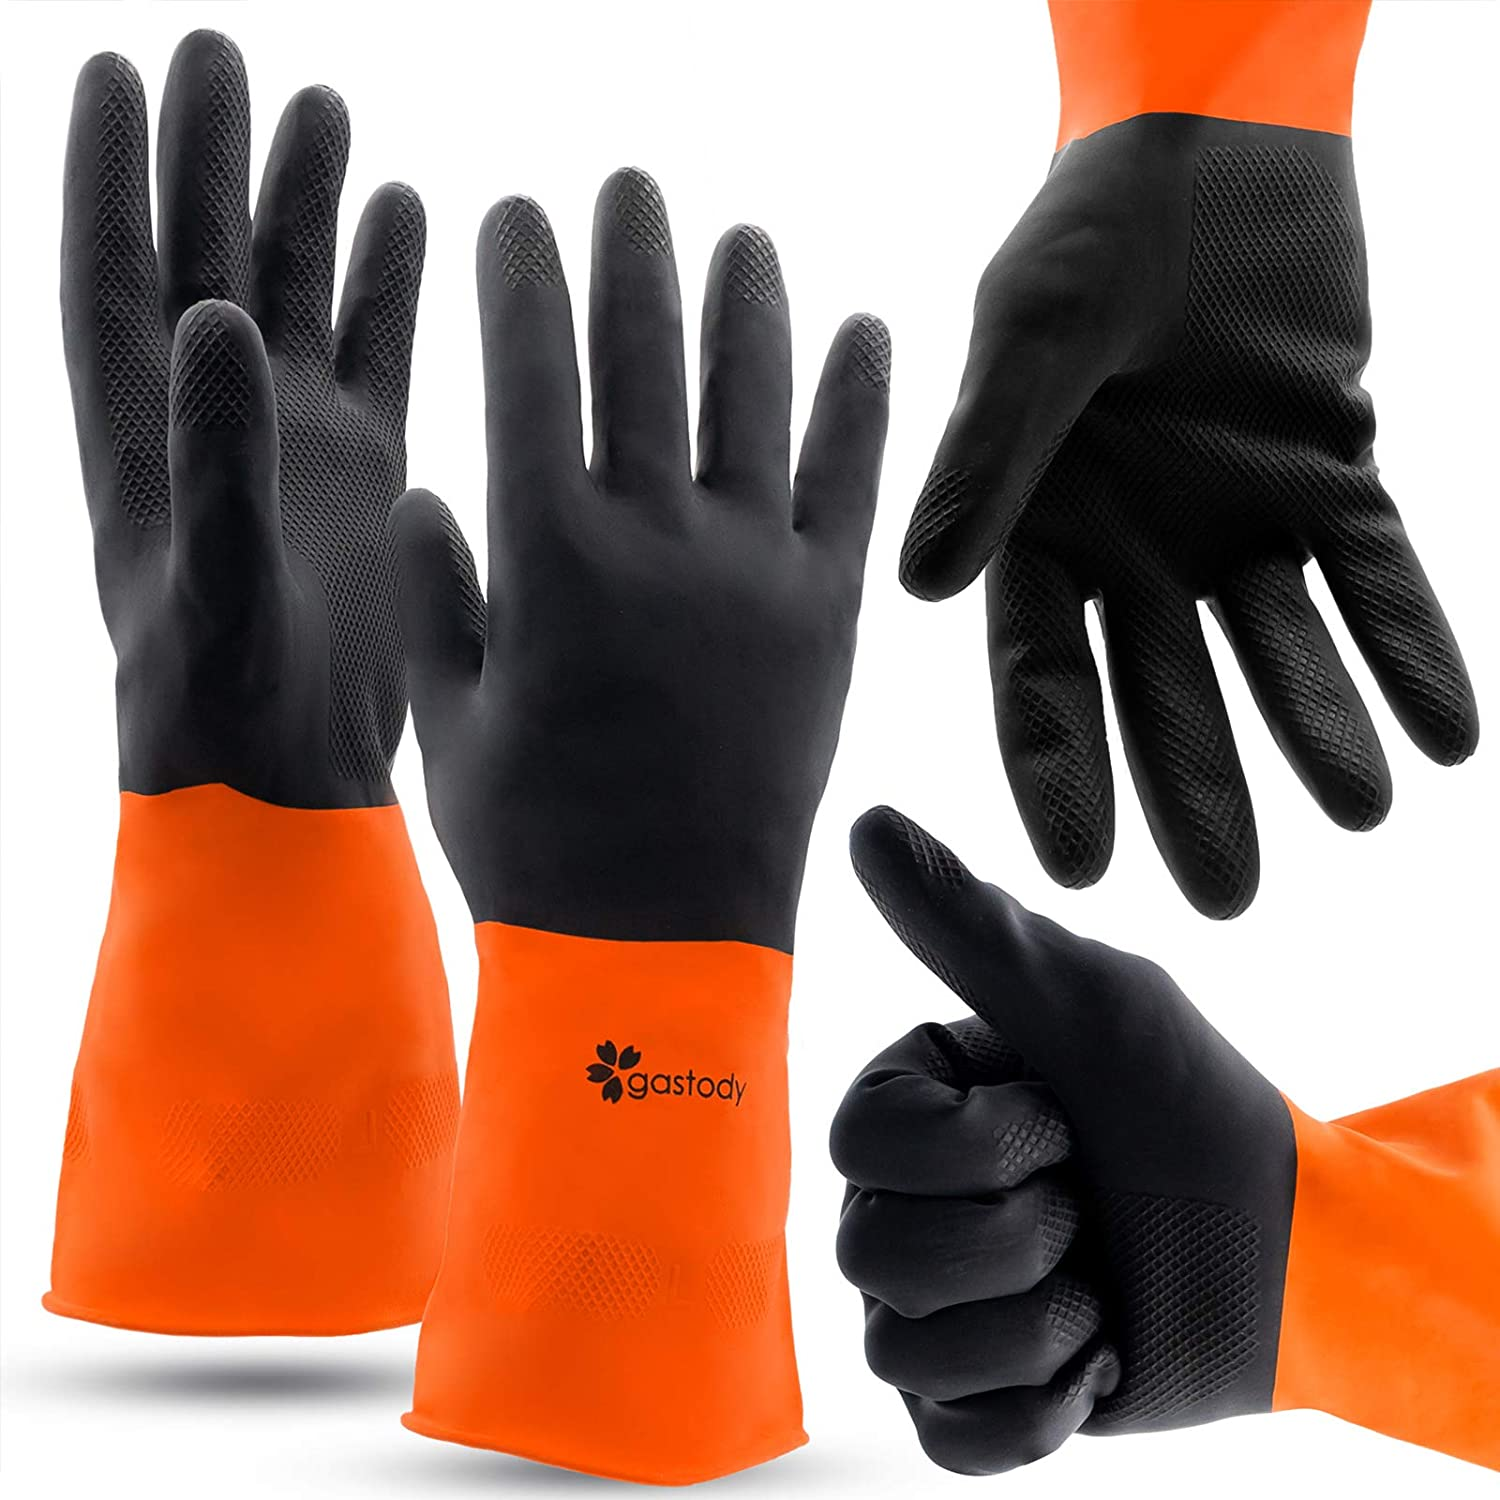 Gastody - Chemical Resistant Gloves Set of -S-M-L-XL Gl 2 Pairs New Orleans Mall Limited time cheap sale